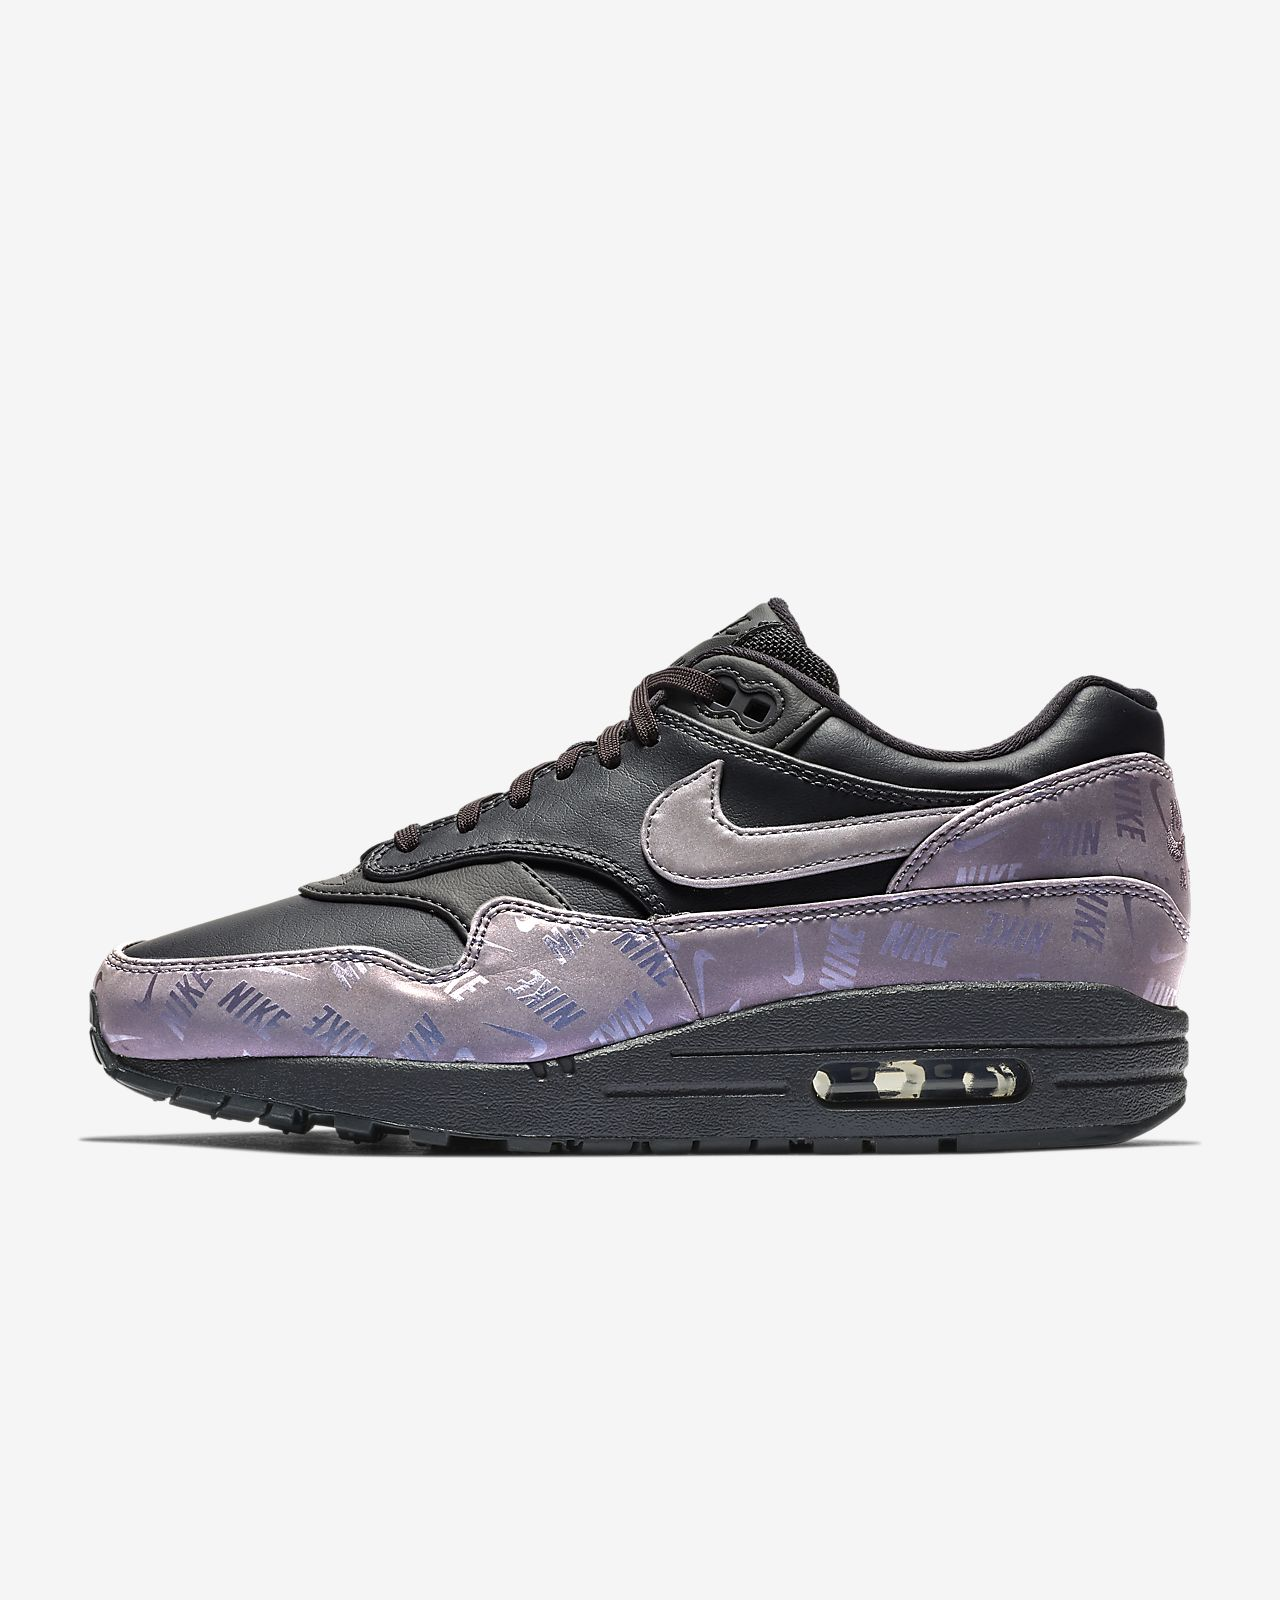 the best attitude bfbfe 06e13 ... Chaussure Nike Air Max 1 LX pour Femme